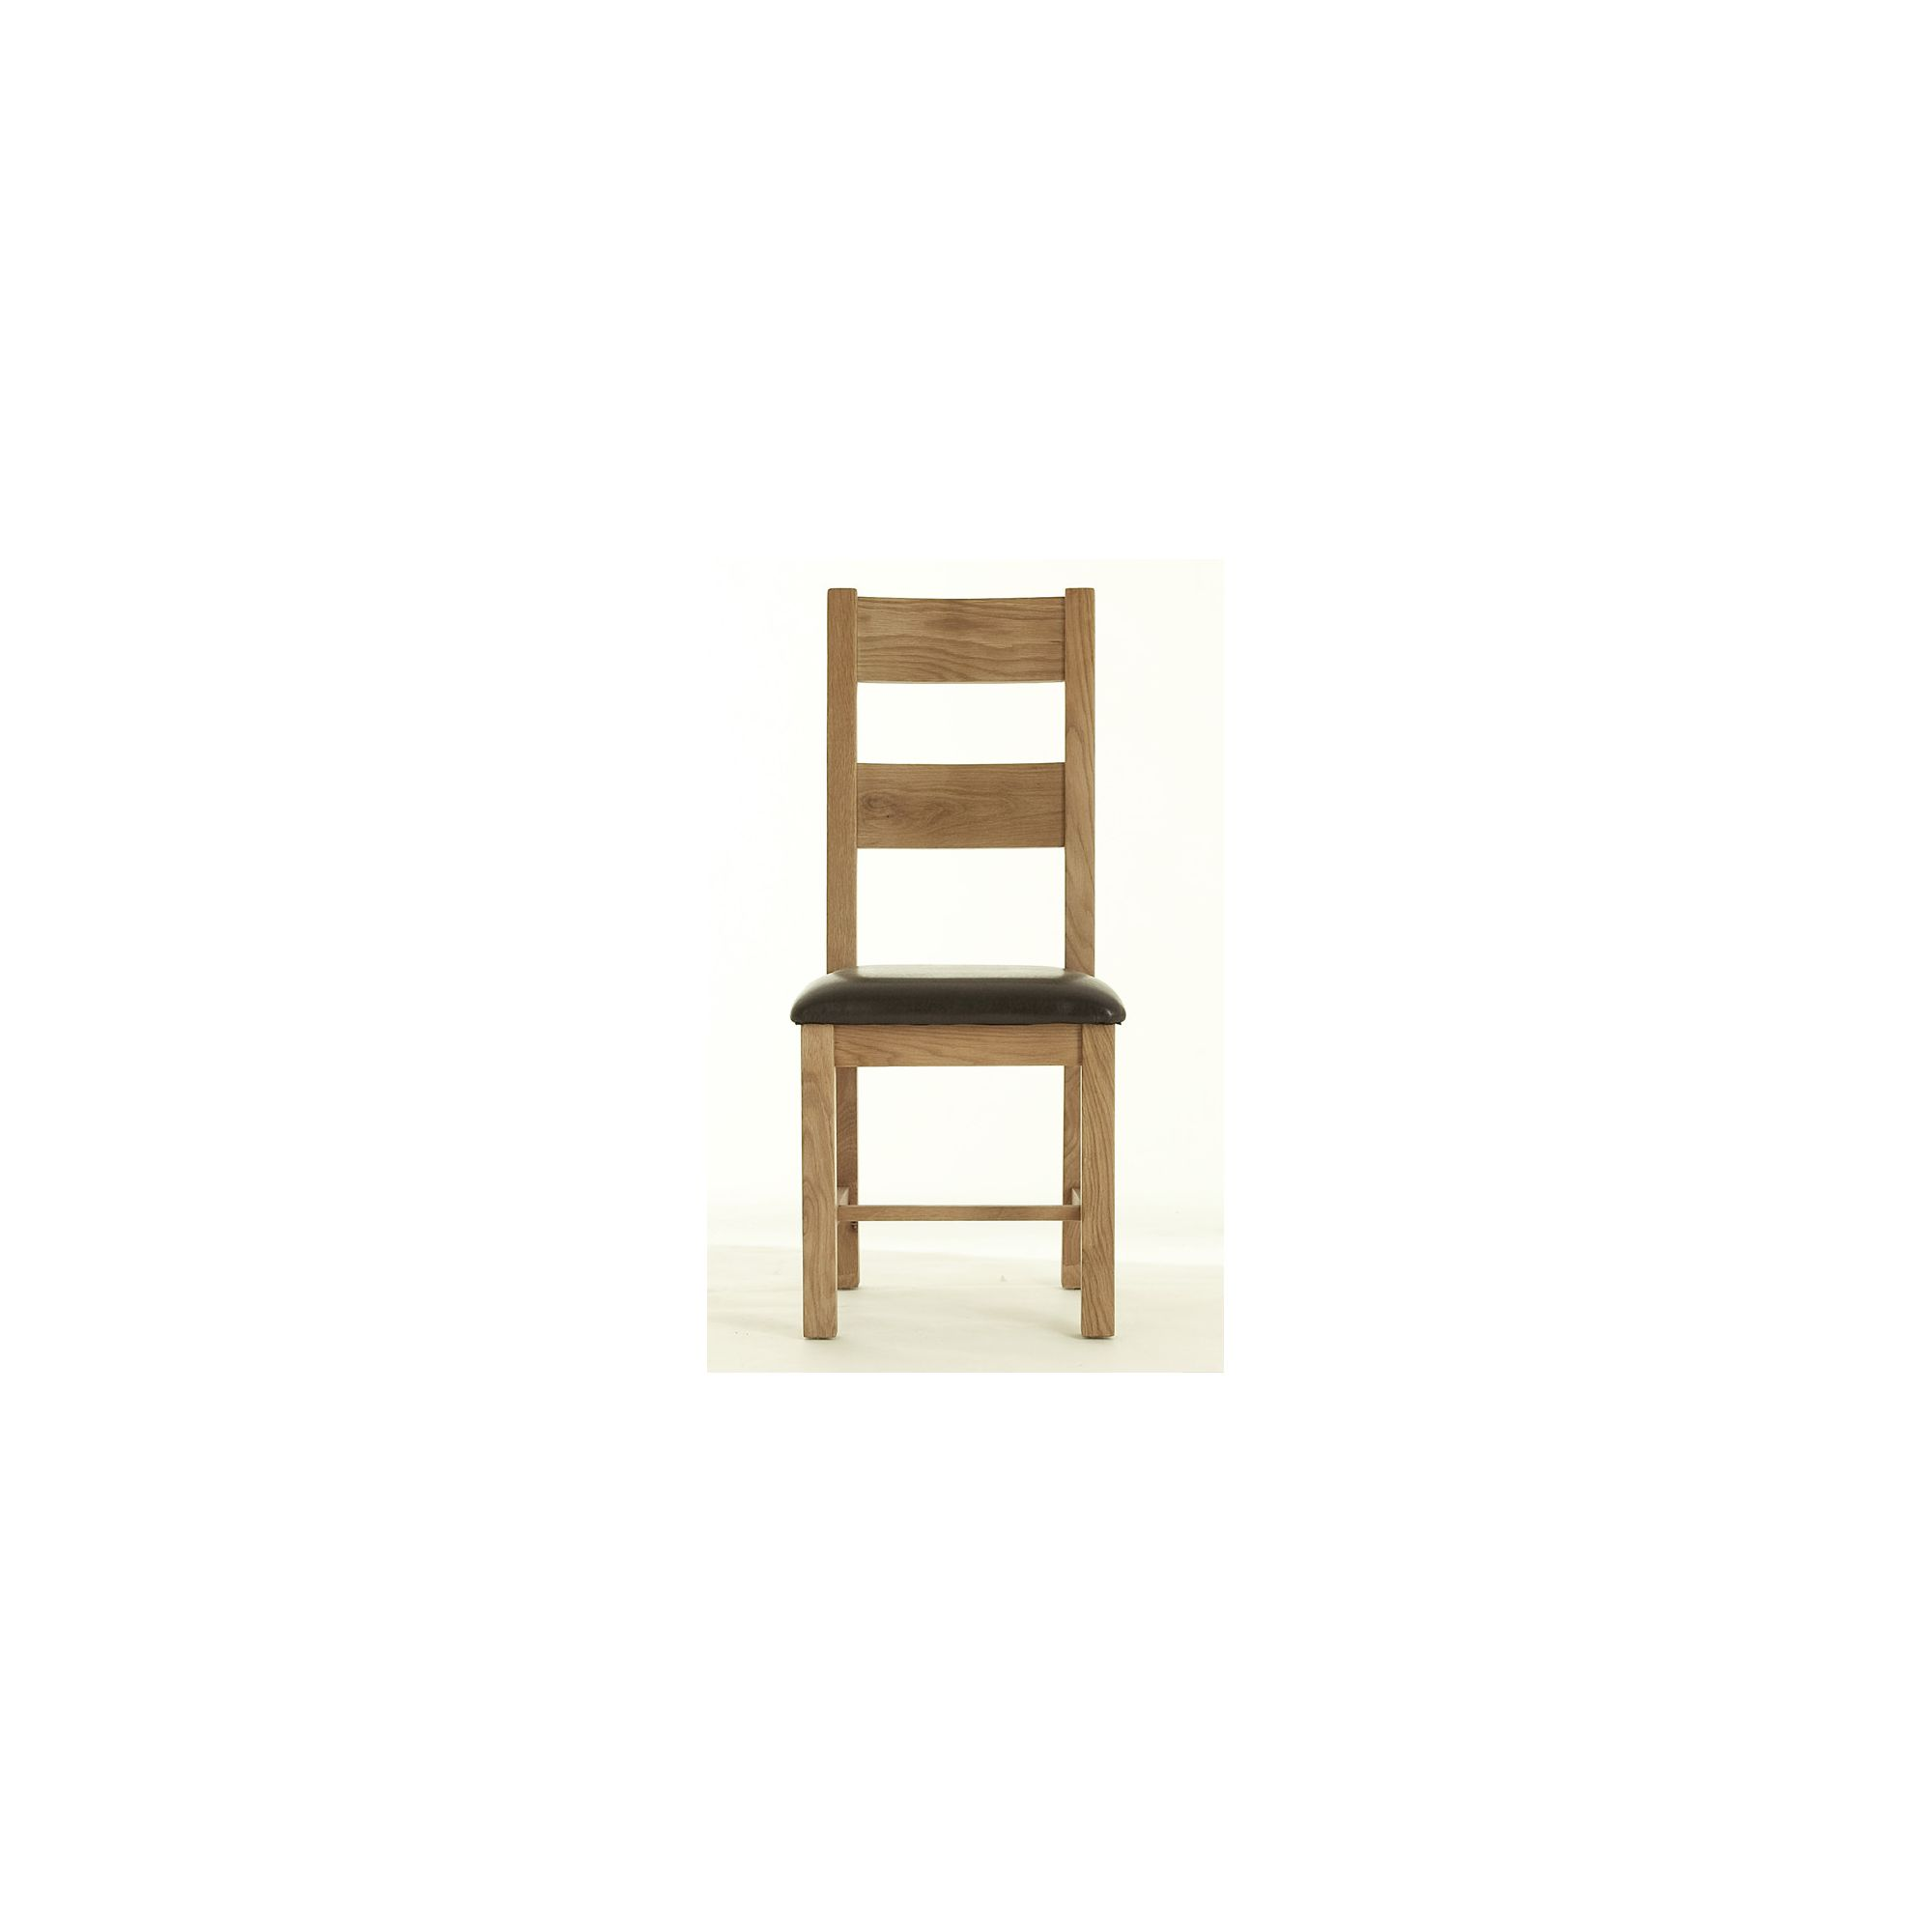 Thorndon Block Dining Chair with Padded Seat in Natural Matured Oak